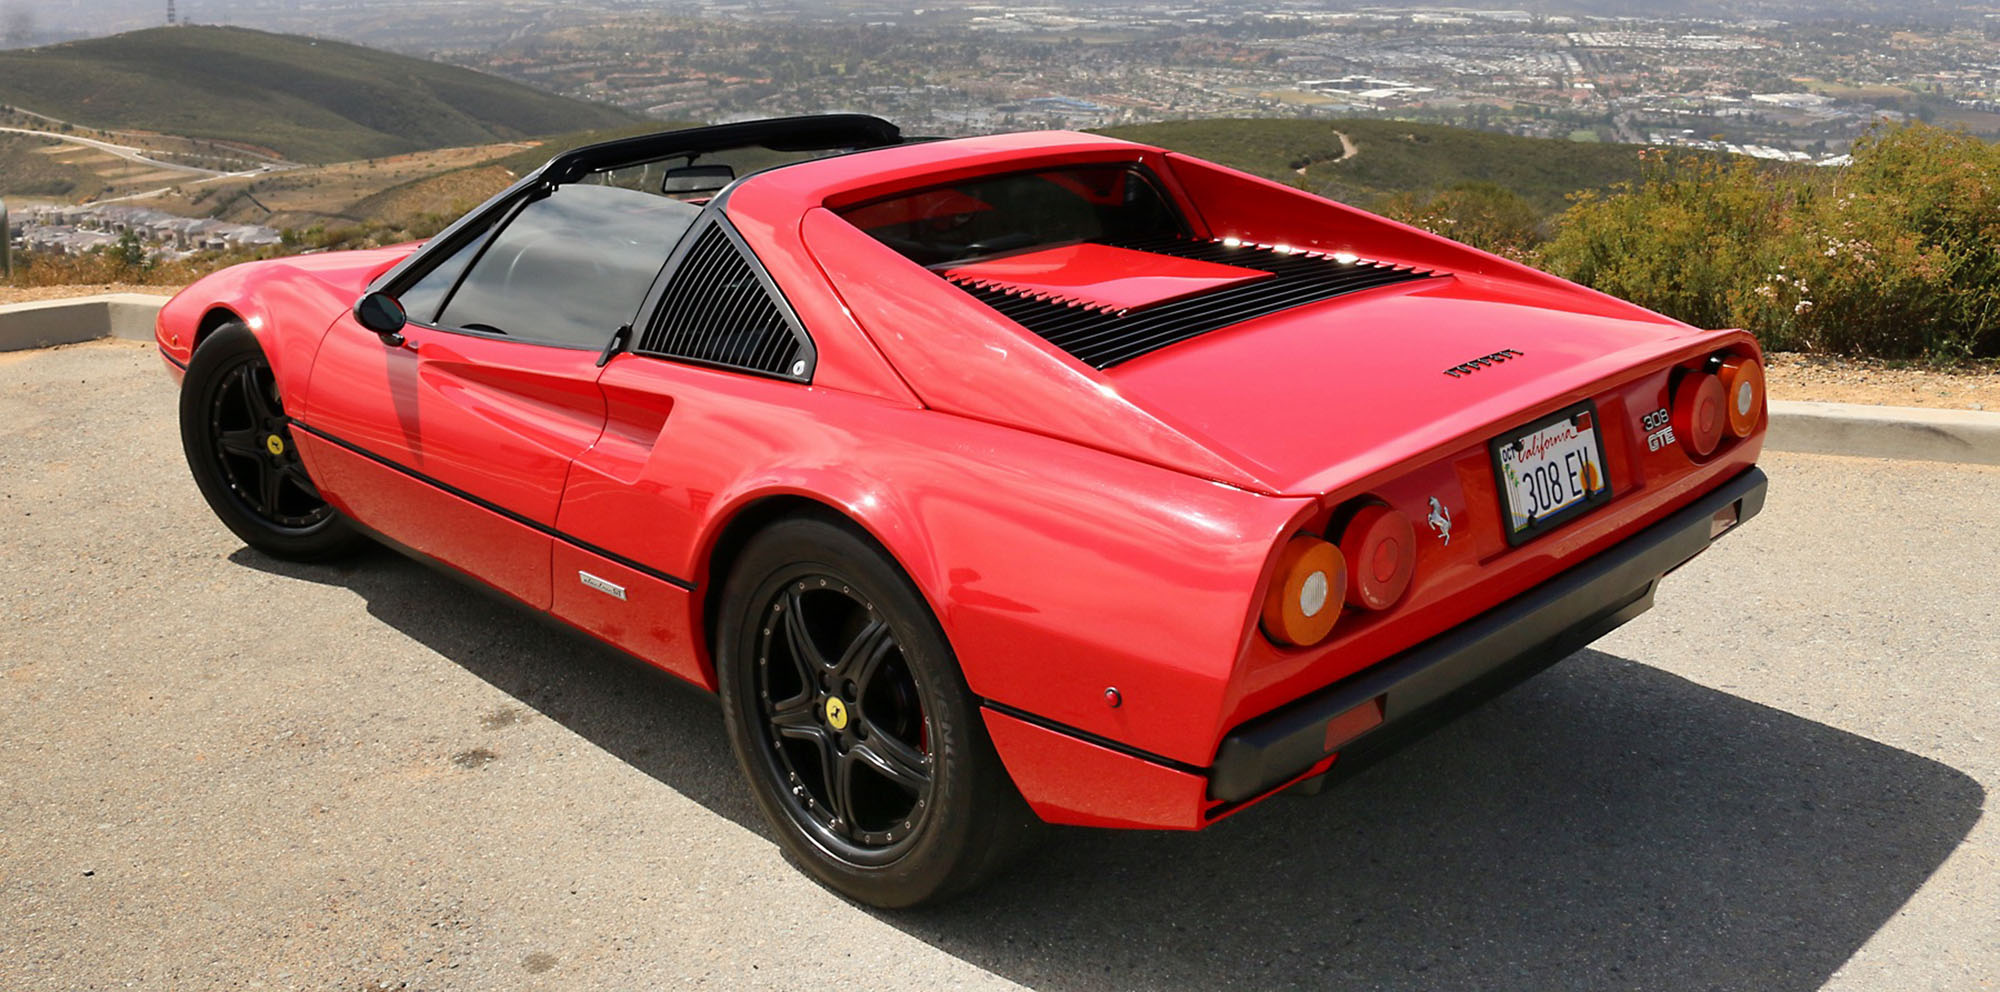 ferrari 308 gts restored with new electric drivetrain photos 1 of 8. Black Bedroom Furniture Sets. Home Design Ideas